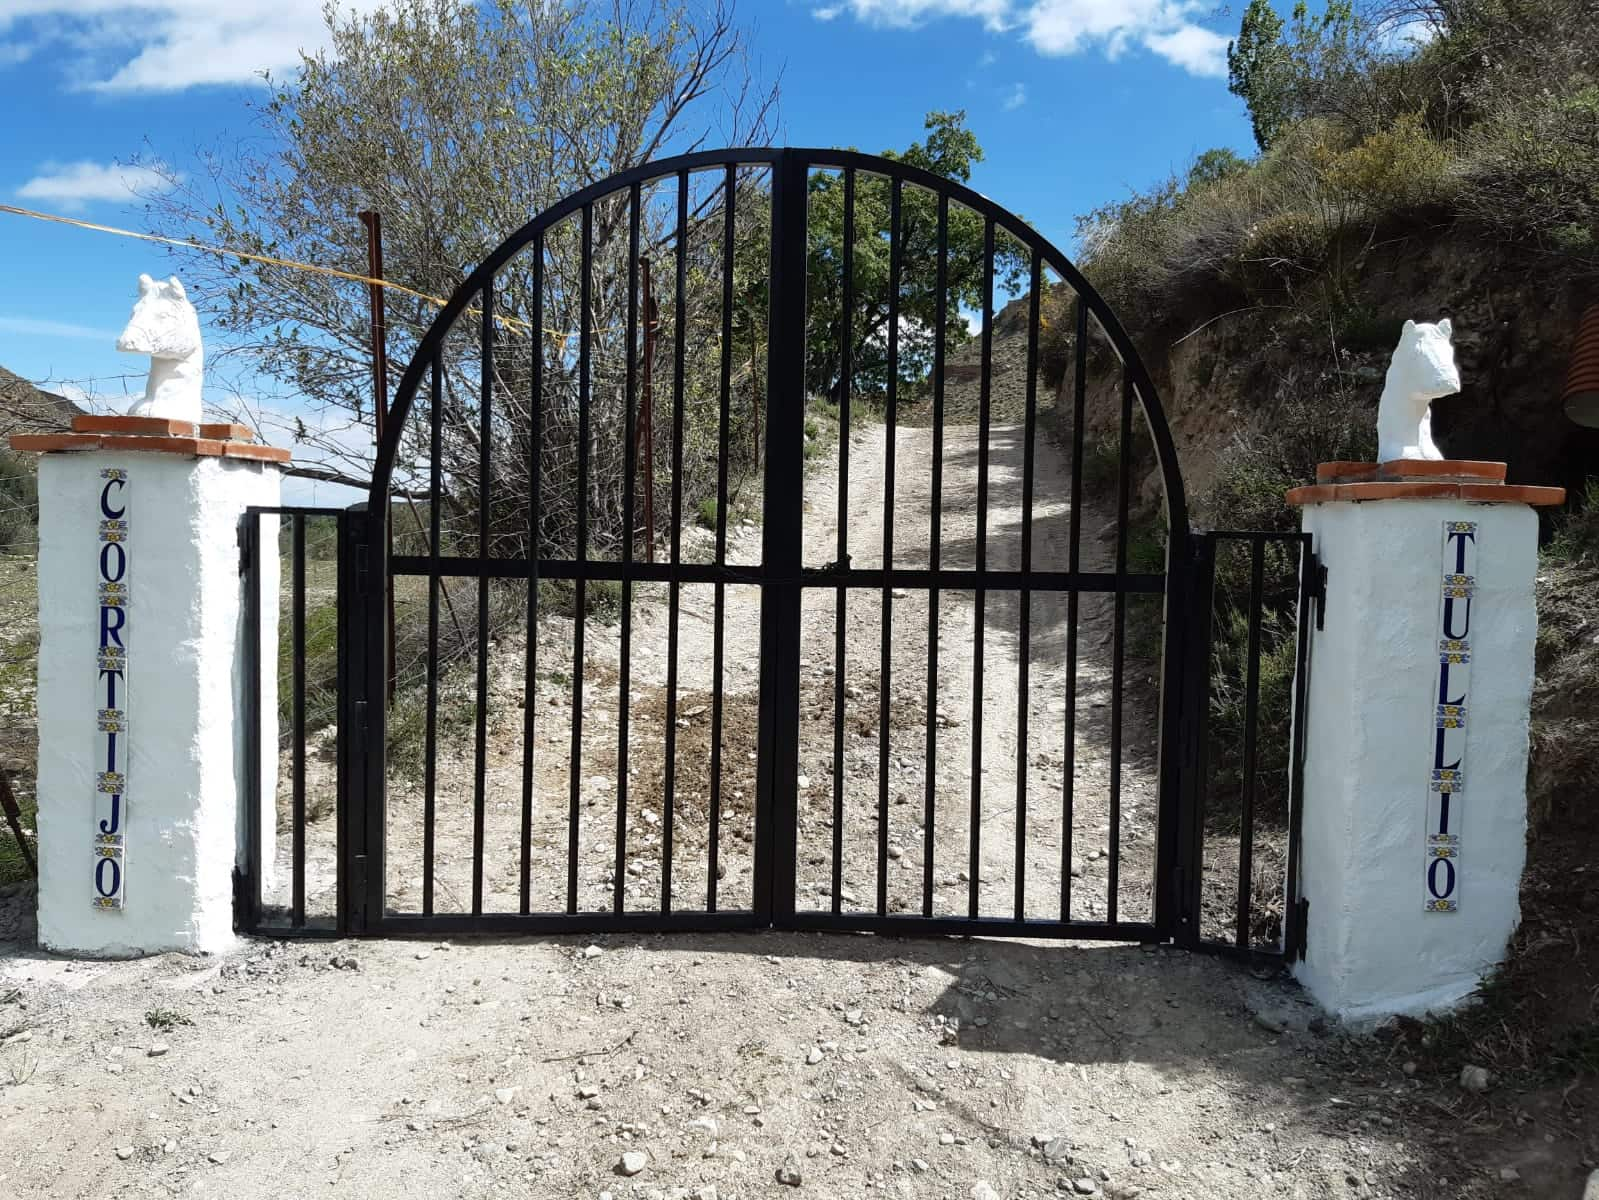 3 bedroom Finca/Country House for sale in Caniles with pool garage - € 285,000 (Ref: 5827504)